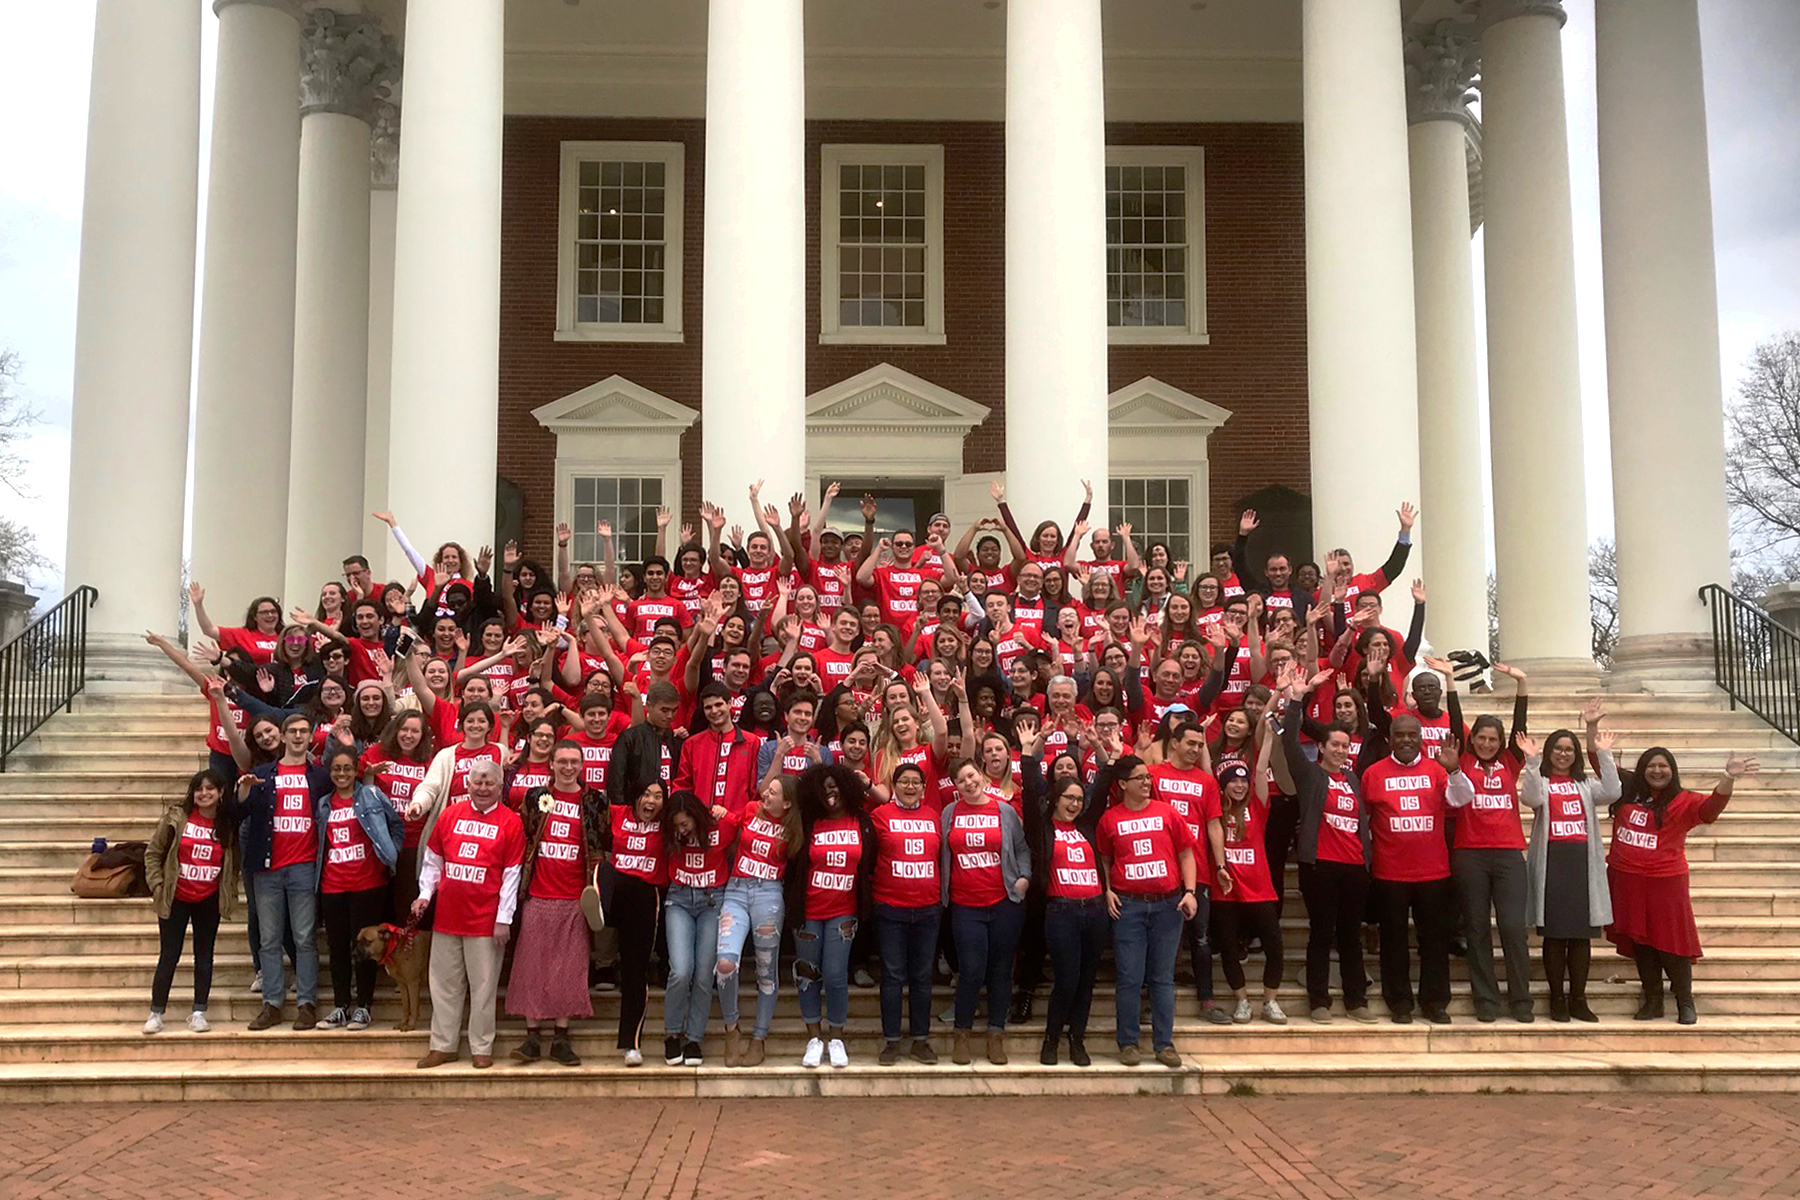 UVA students marked Valentine's Day last year with a joyful photo on the Rotunda steps, continuing a now 10-year-old tradition showing support for LGBTQ peers. (Photo by Dan Addison, University Communications)